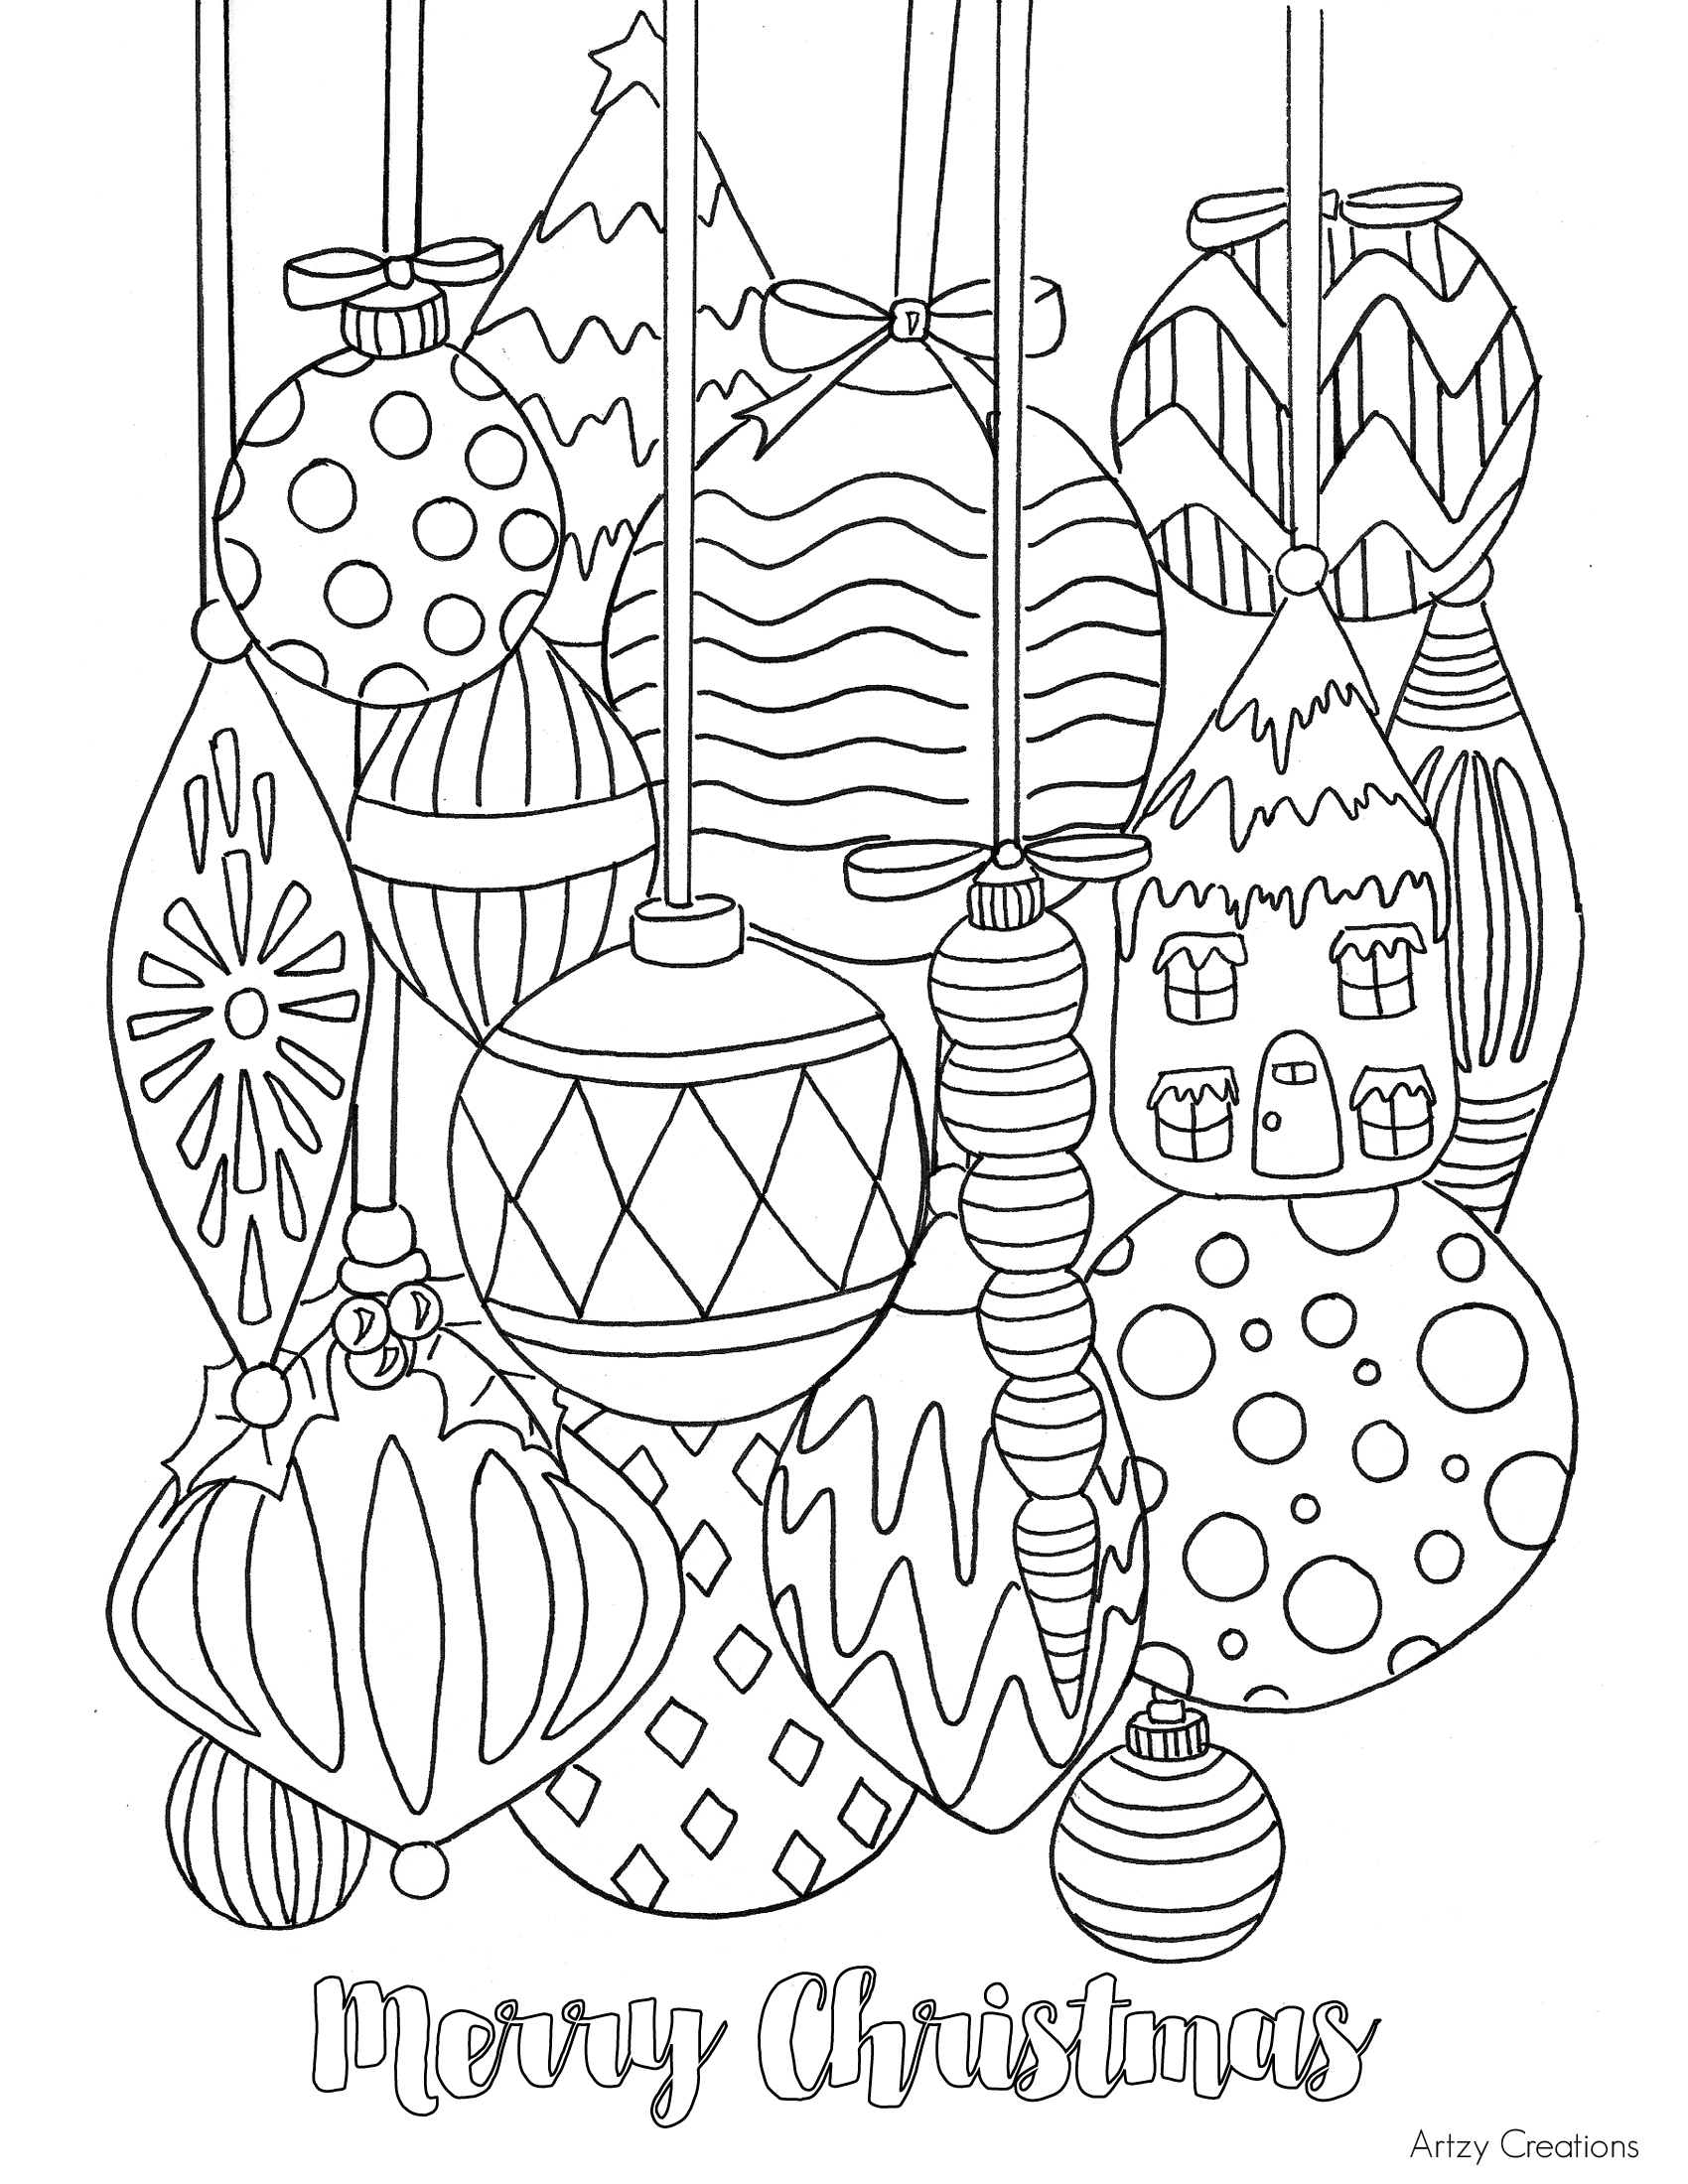 Free printable coloring pages about christmas - Download Your Free Christmas Ornament Coloring Page Here Christmas